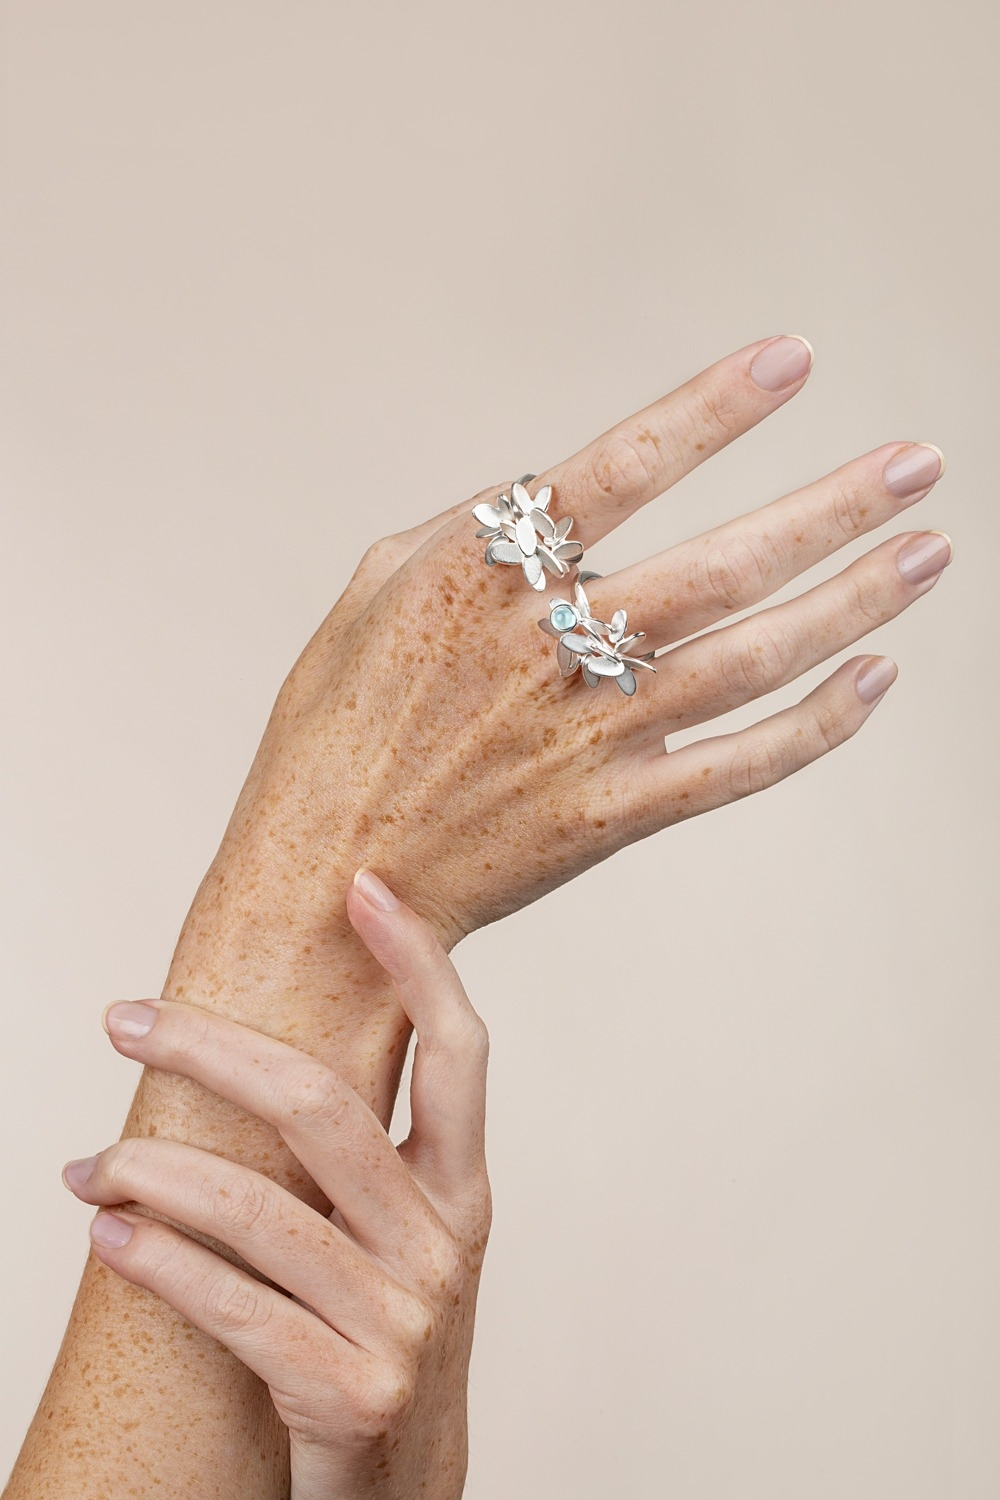 Lyng large rings with topas, inspired by leaves, nature and origami. Designed by Norwegian jewelry designer Kaja Gjedebo